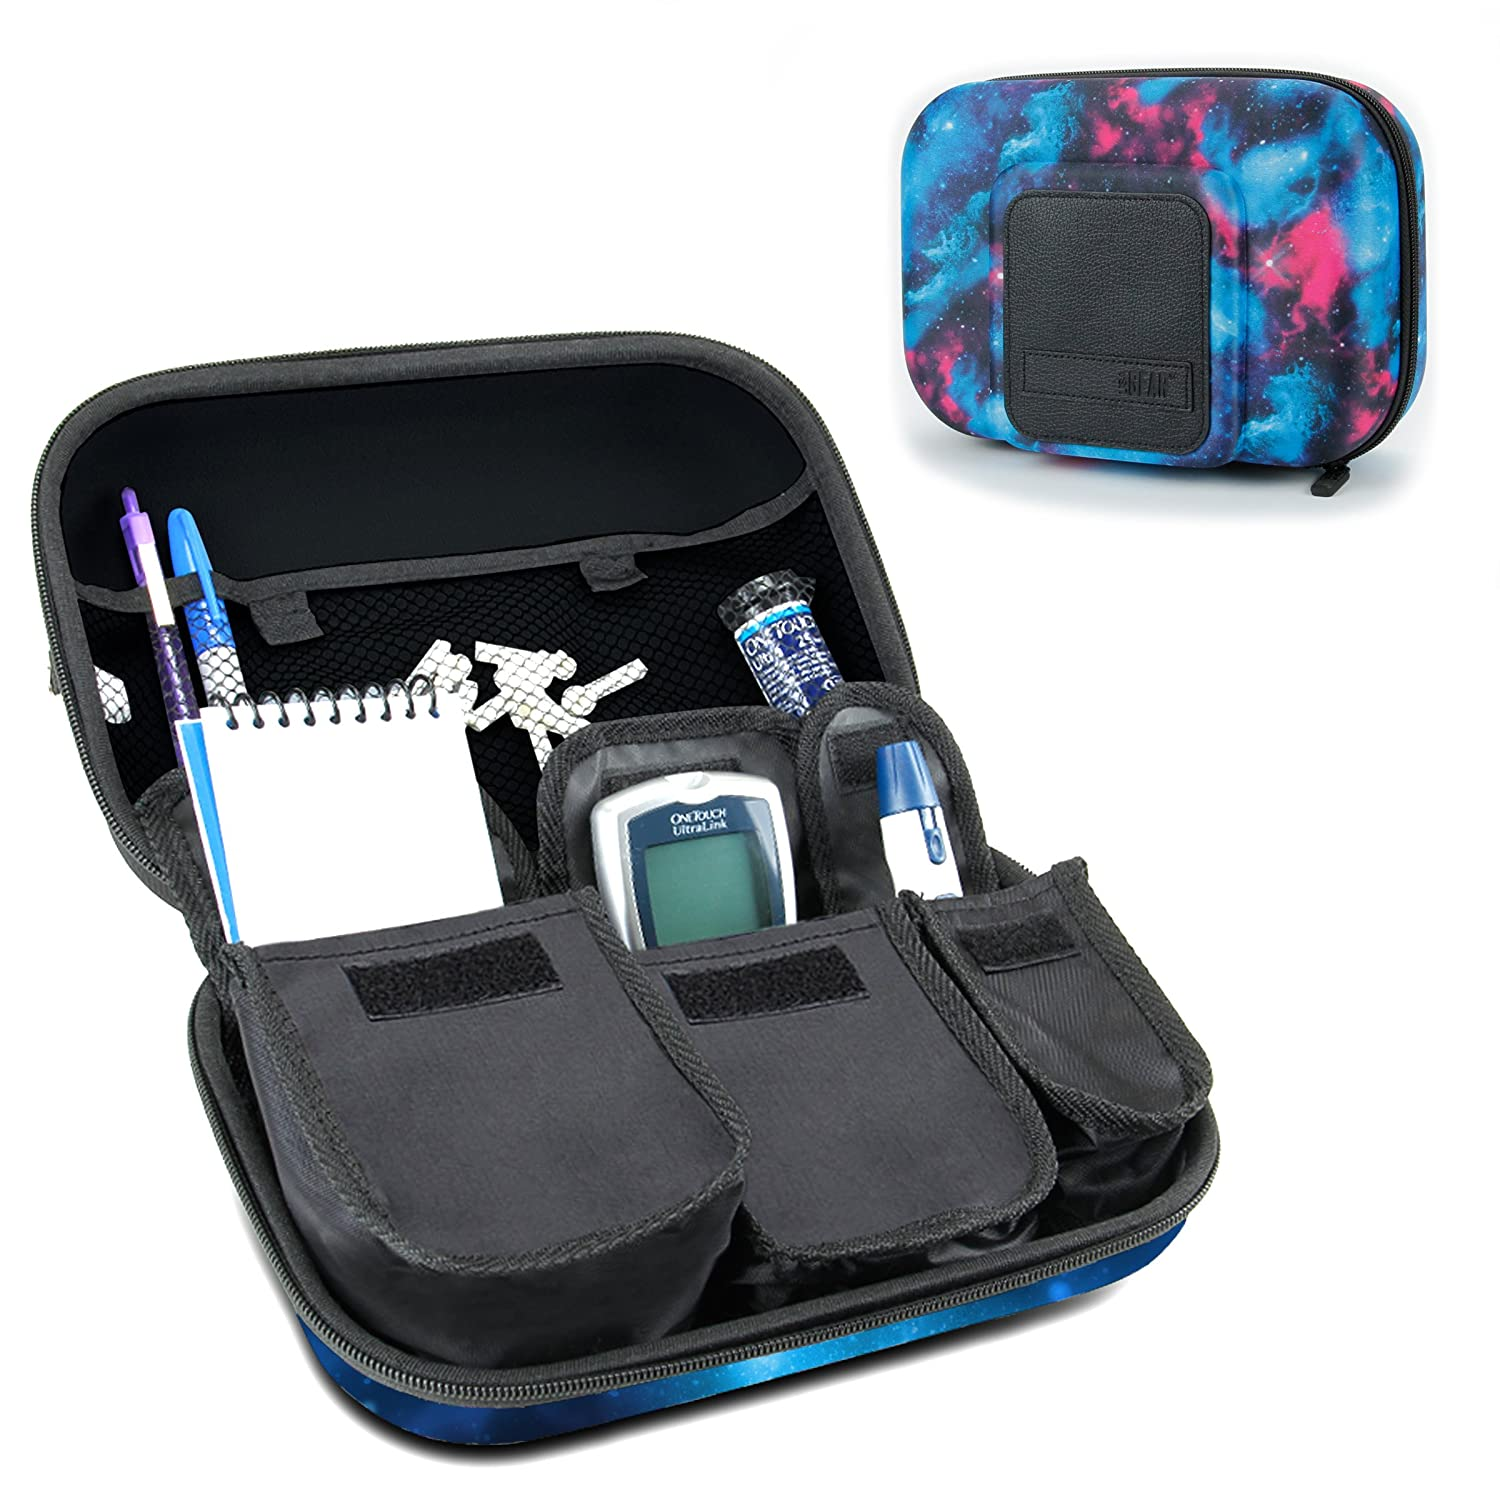 Diabetic Supplies Travel Case Organizer for Blood Glucose Monitoring Systems , Syringes , Pens , Insulin Vials & Lancets by USA Gear - ACCU-CHEK Nano , Bayer Contour , TRUEtest and More Kits Accessory Power